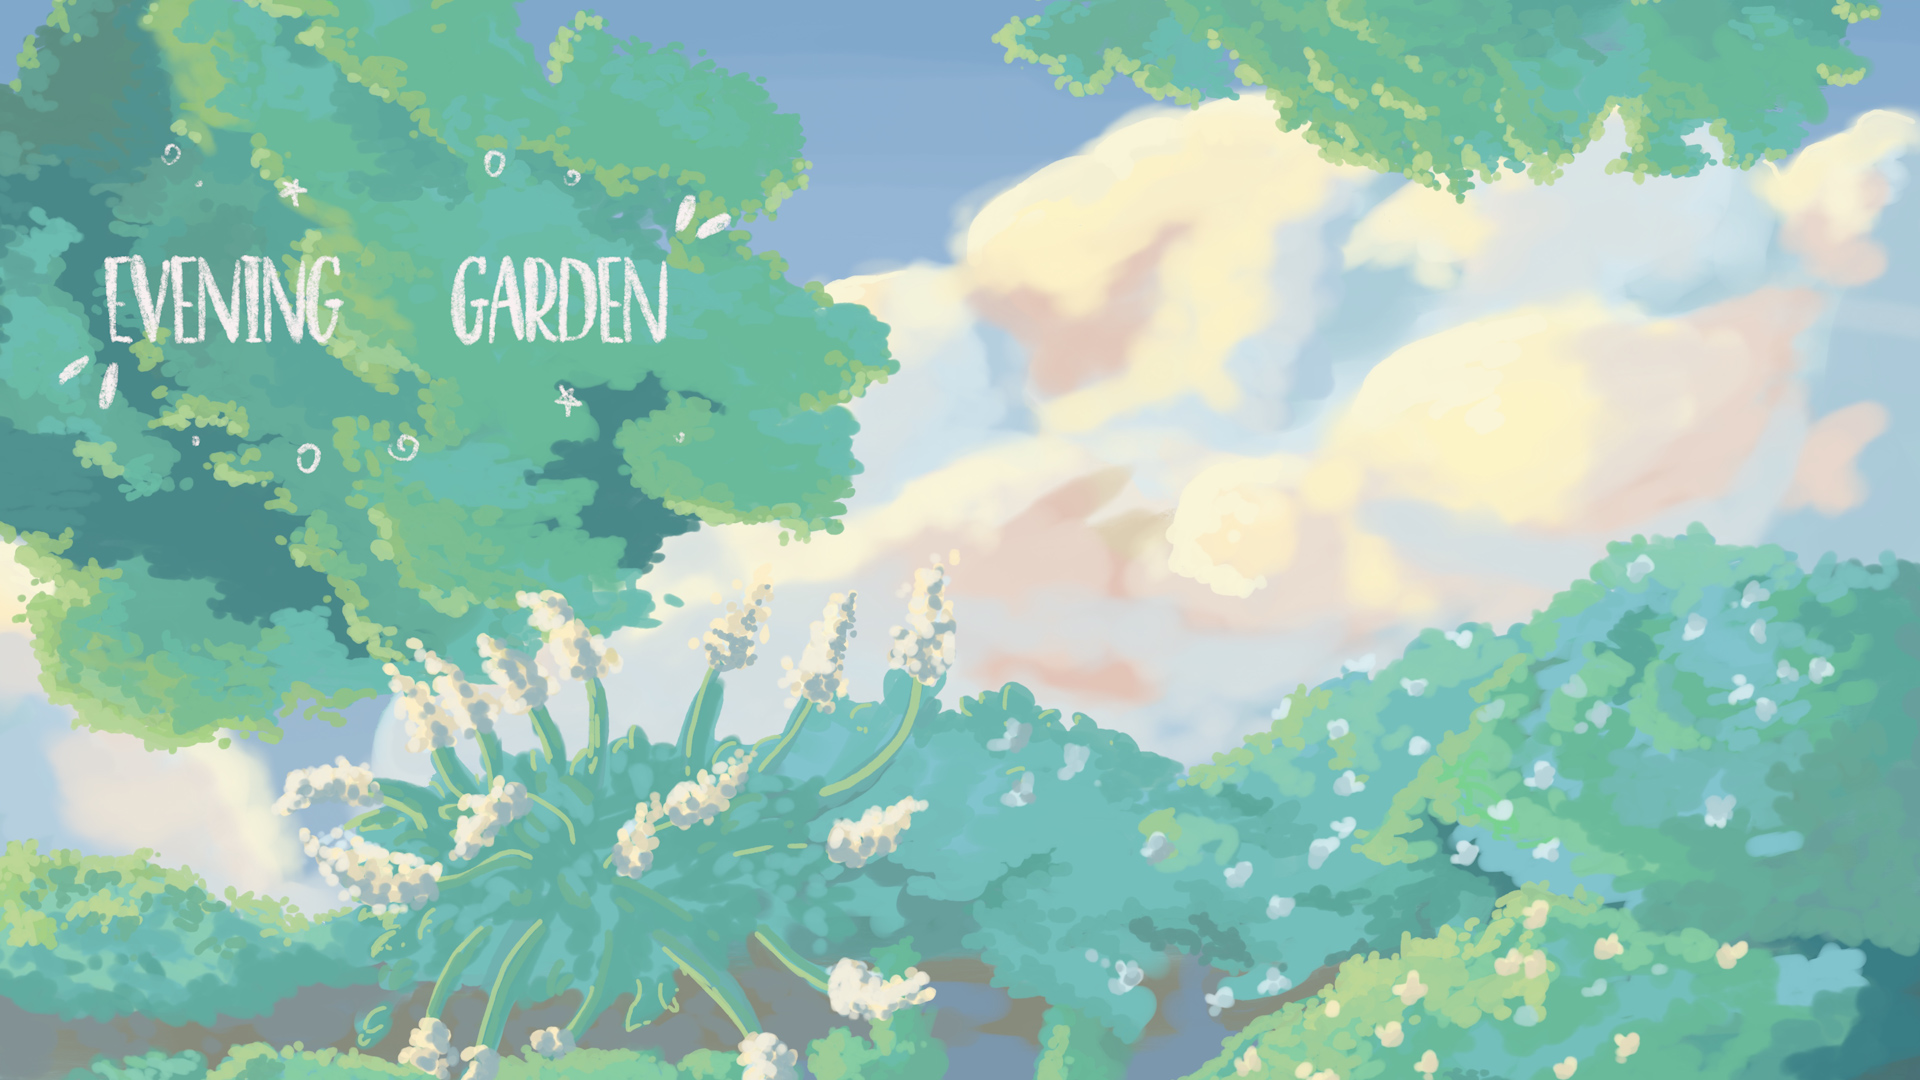 Evening Garden | Procreate Timelapse | Chill Draw With Me